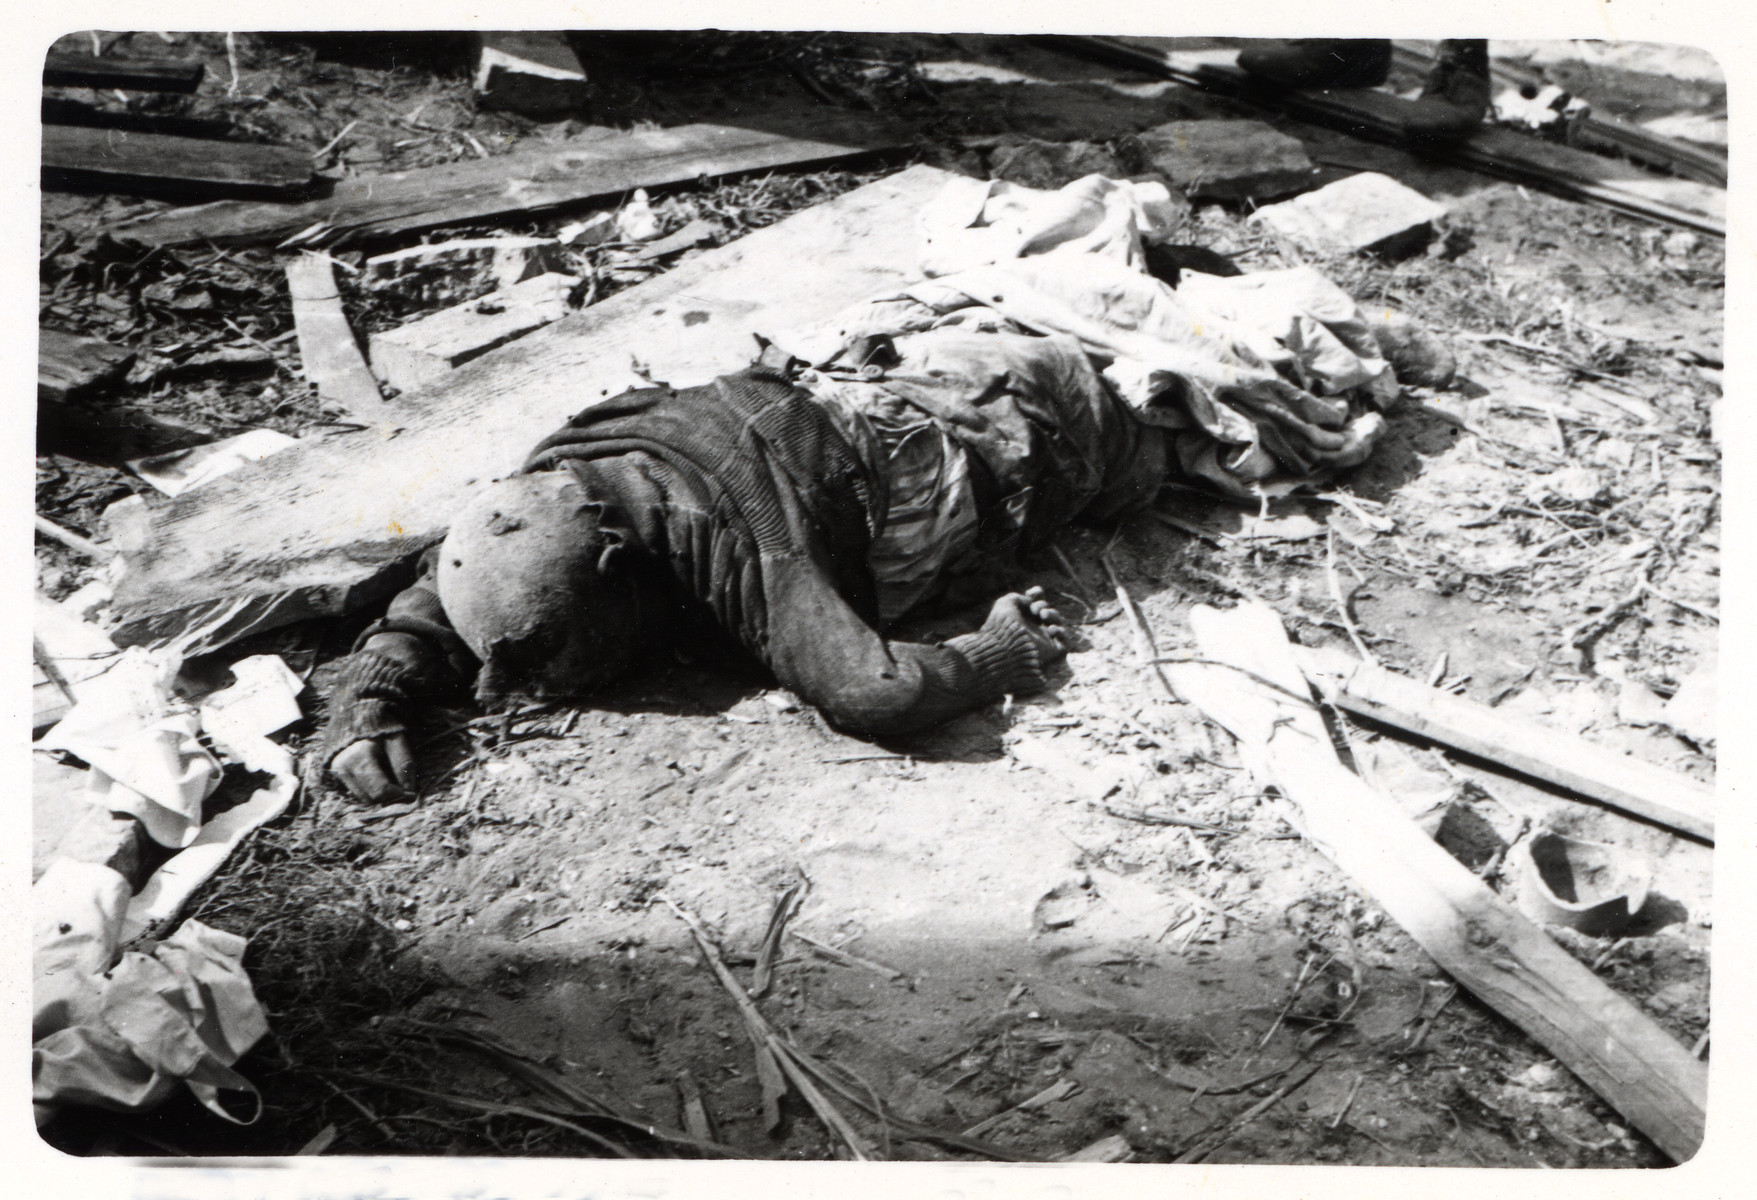 The corpse of a  child lies on the grounds of a bombed out school in besieged Warsaw.